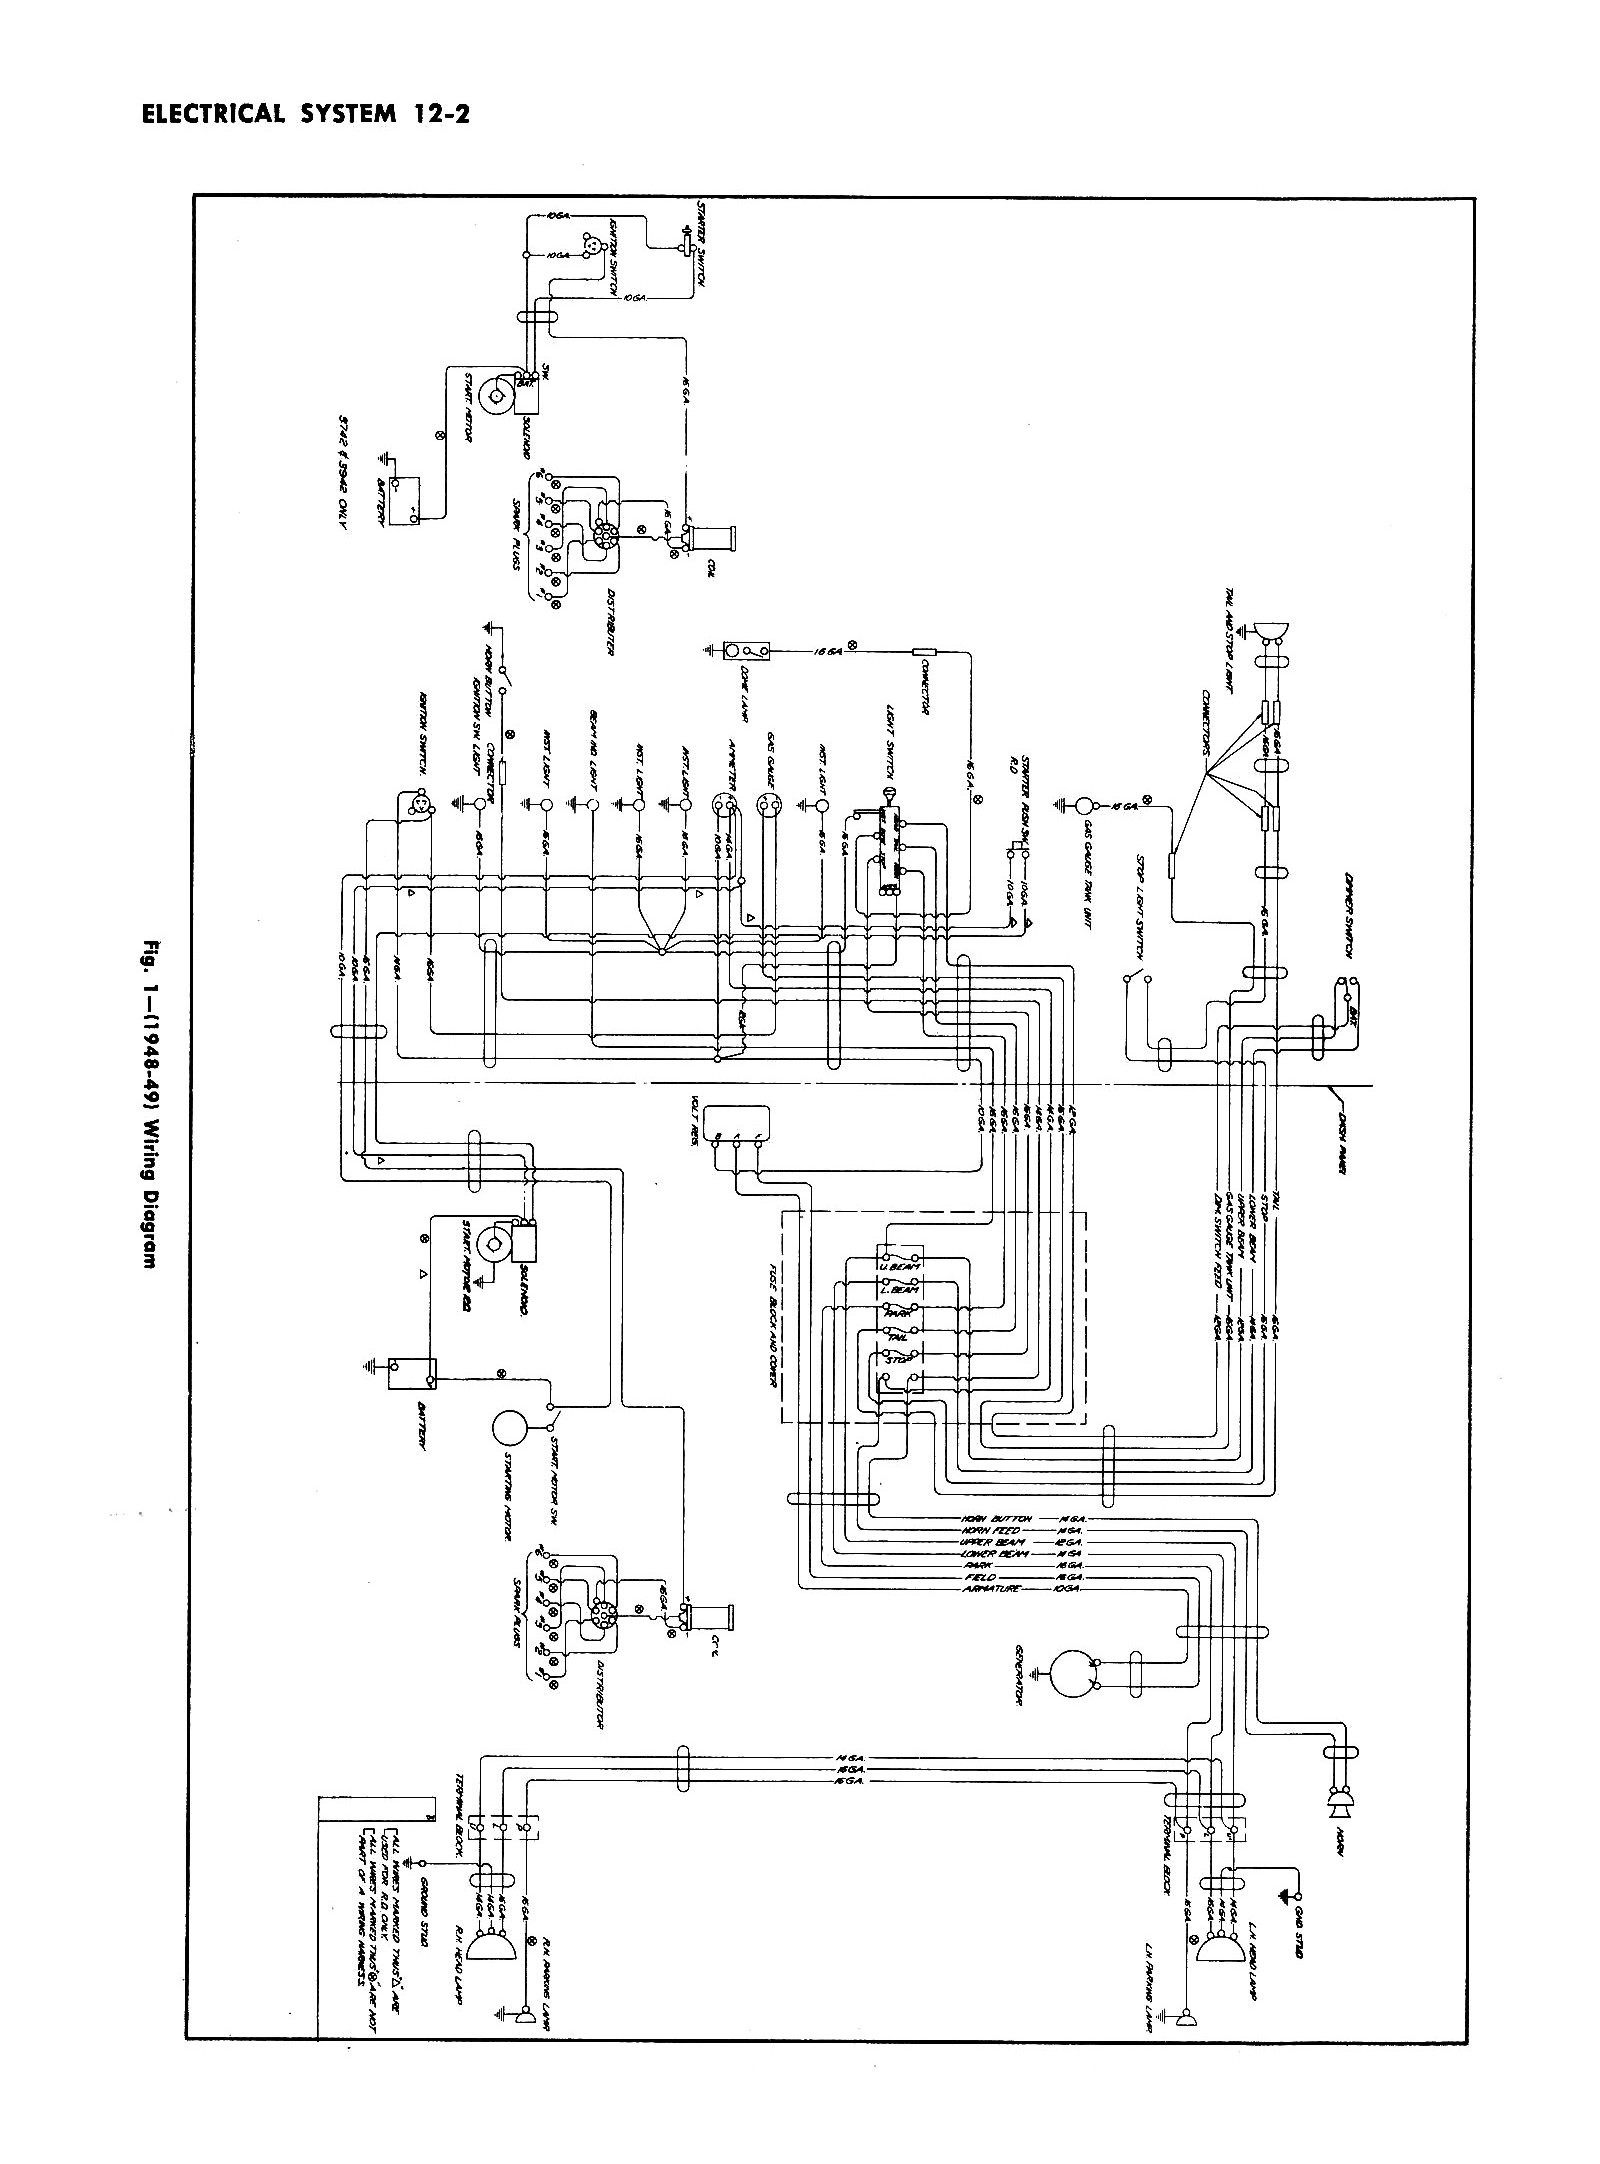 48car 1958 chevrolet headlight switch wiring diagram wiring diagram